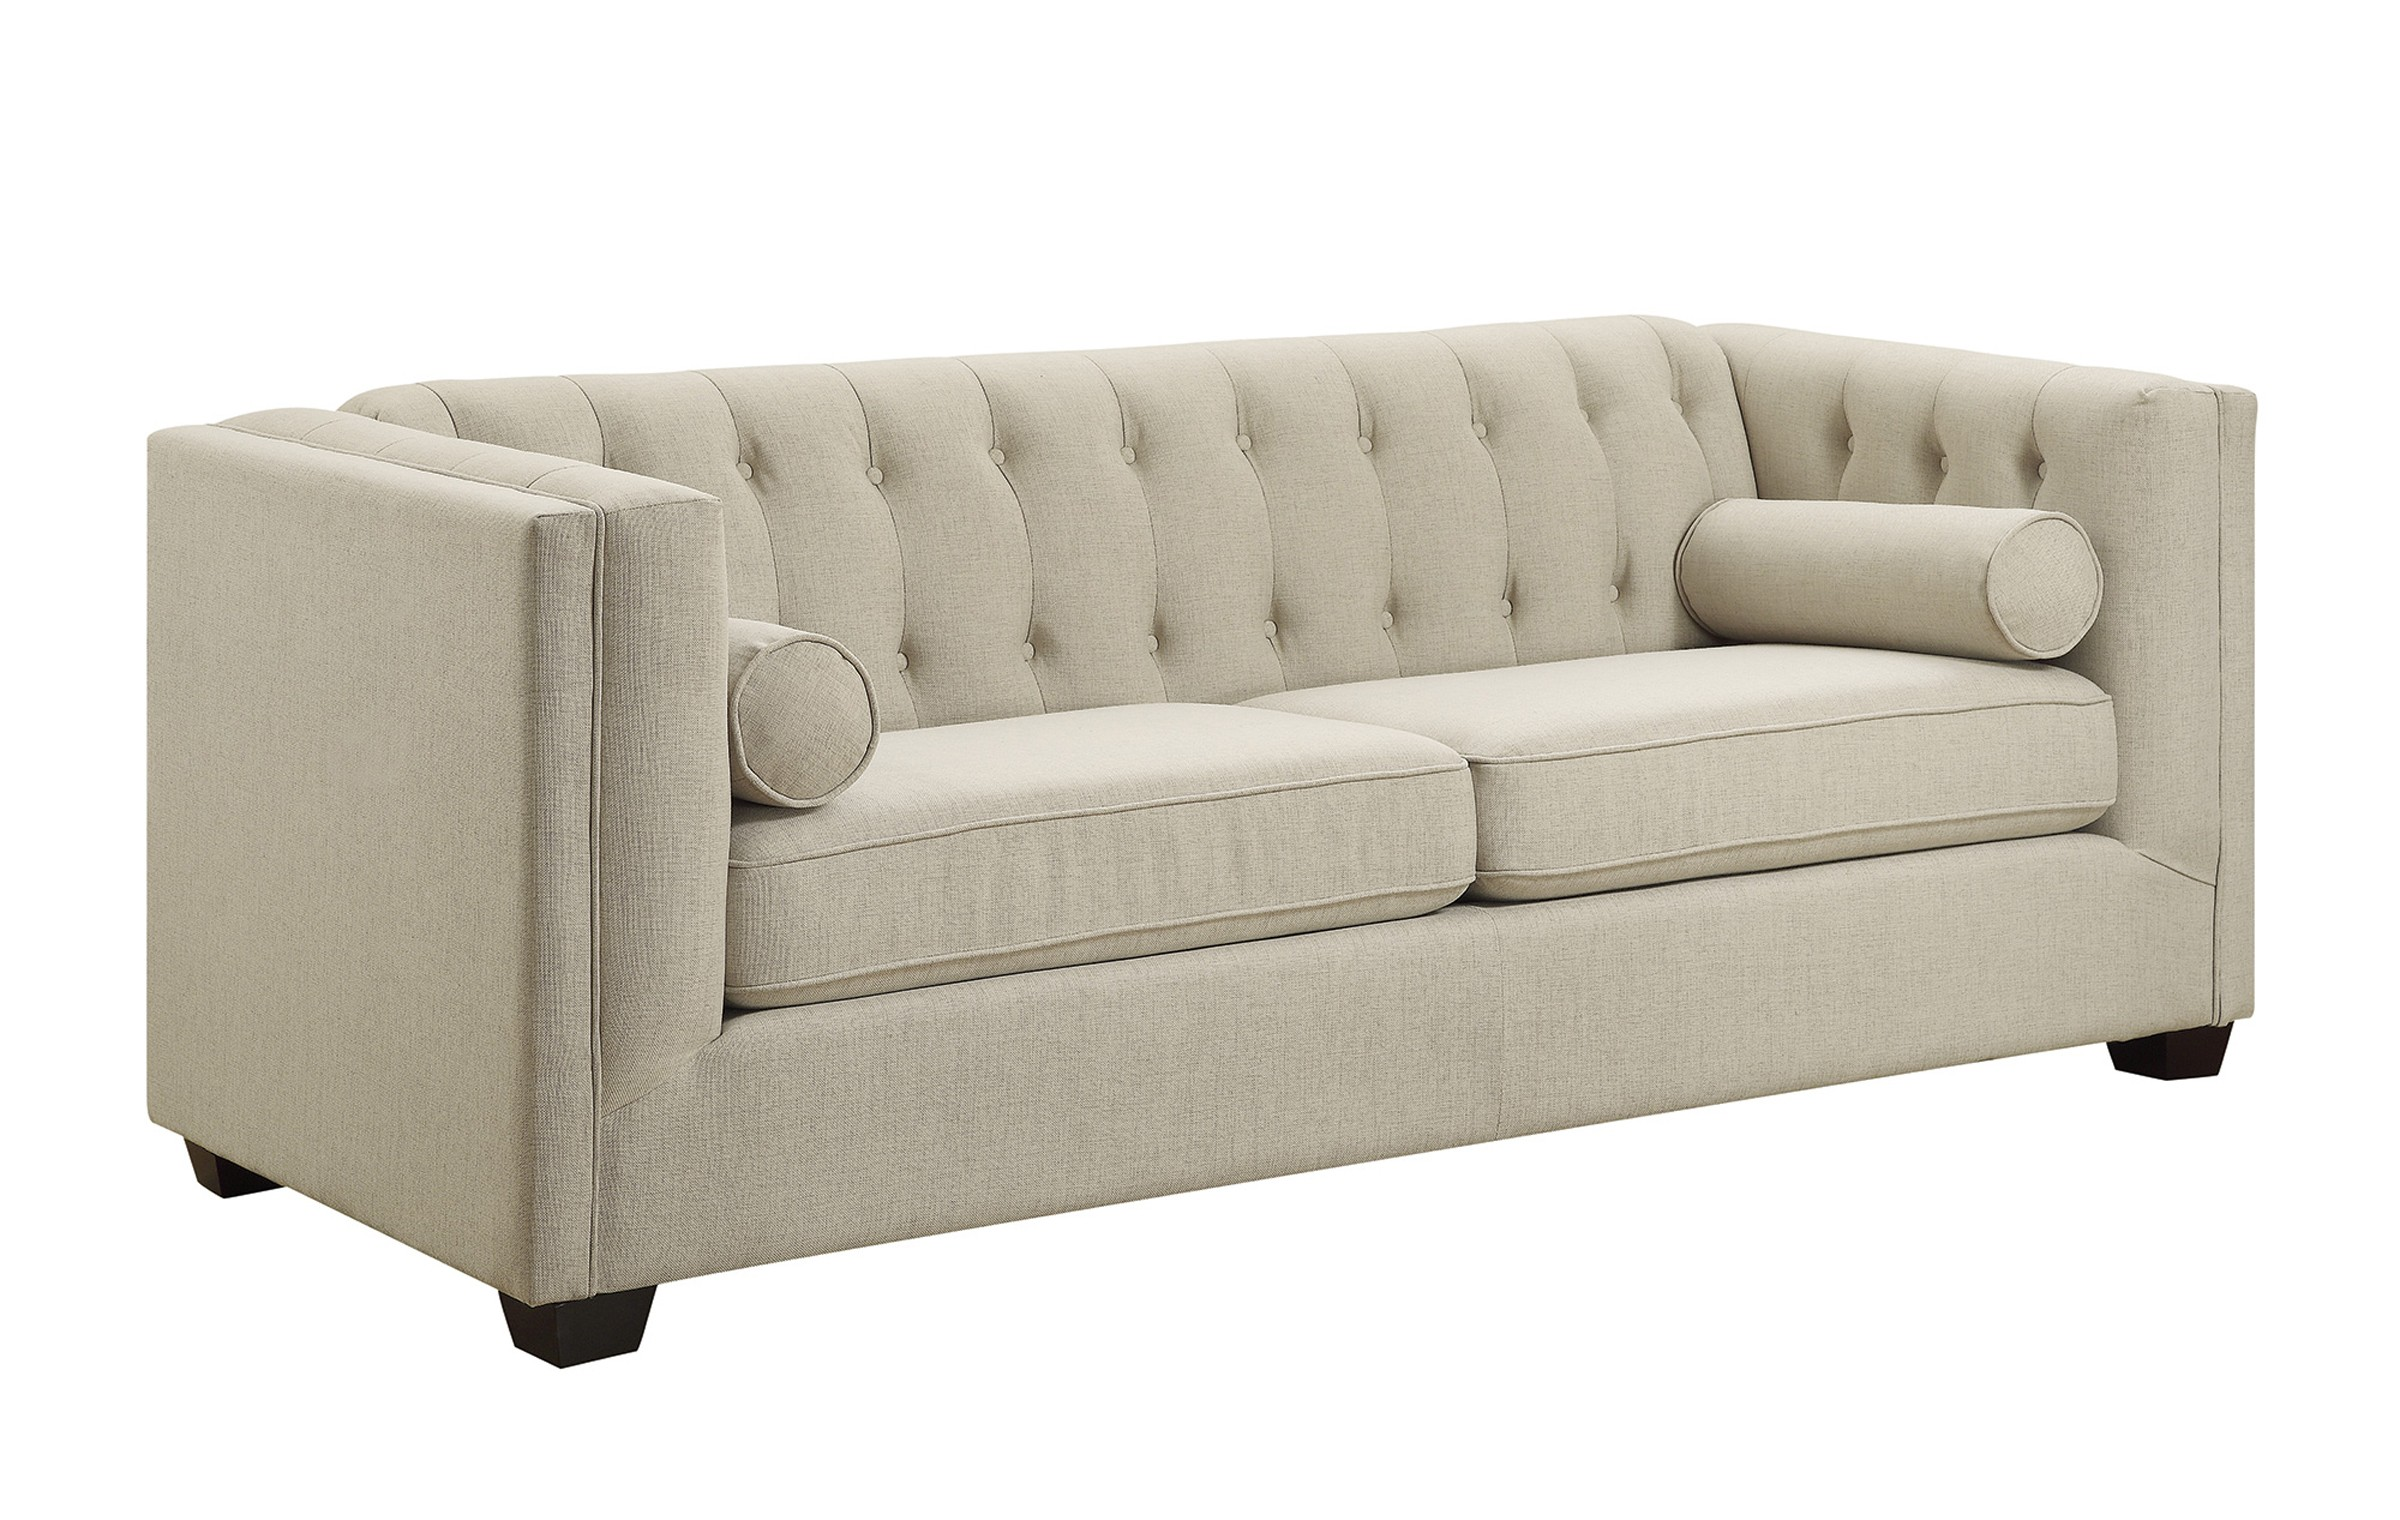 Cairns Transitional Oatmeal Linen Sofa Oc Homestyle Furniture ~ What Is A Transitional Sofa